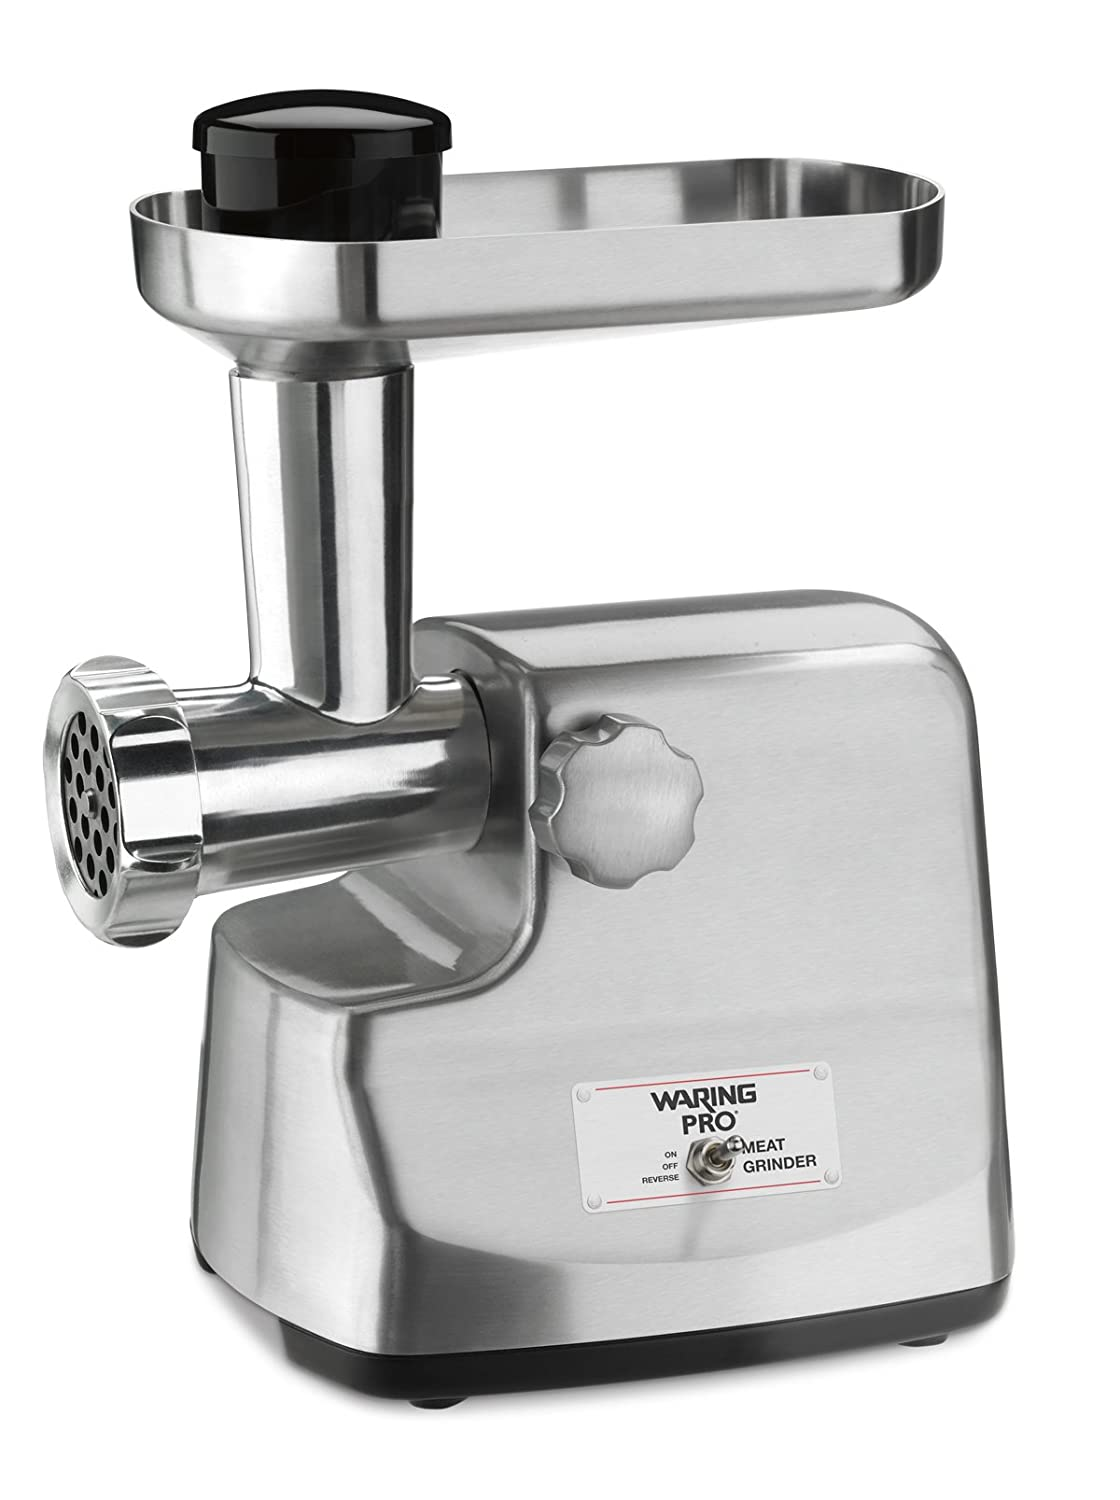 Waring Pro MG855 Professional Die-Cast Metal Housing Meat Grinder